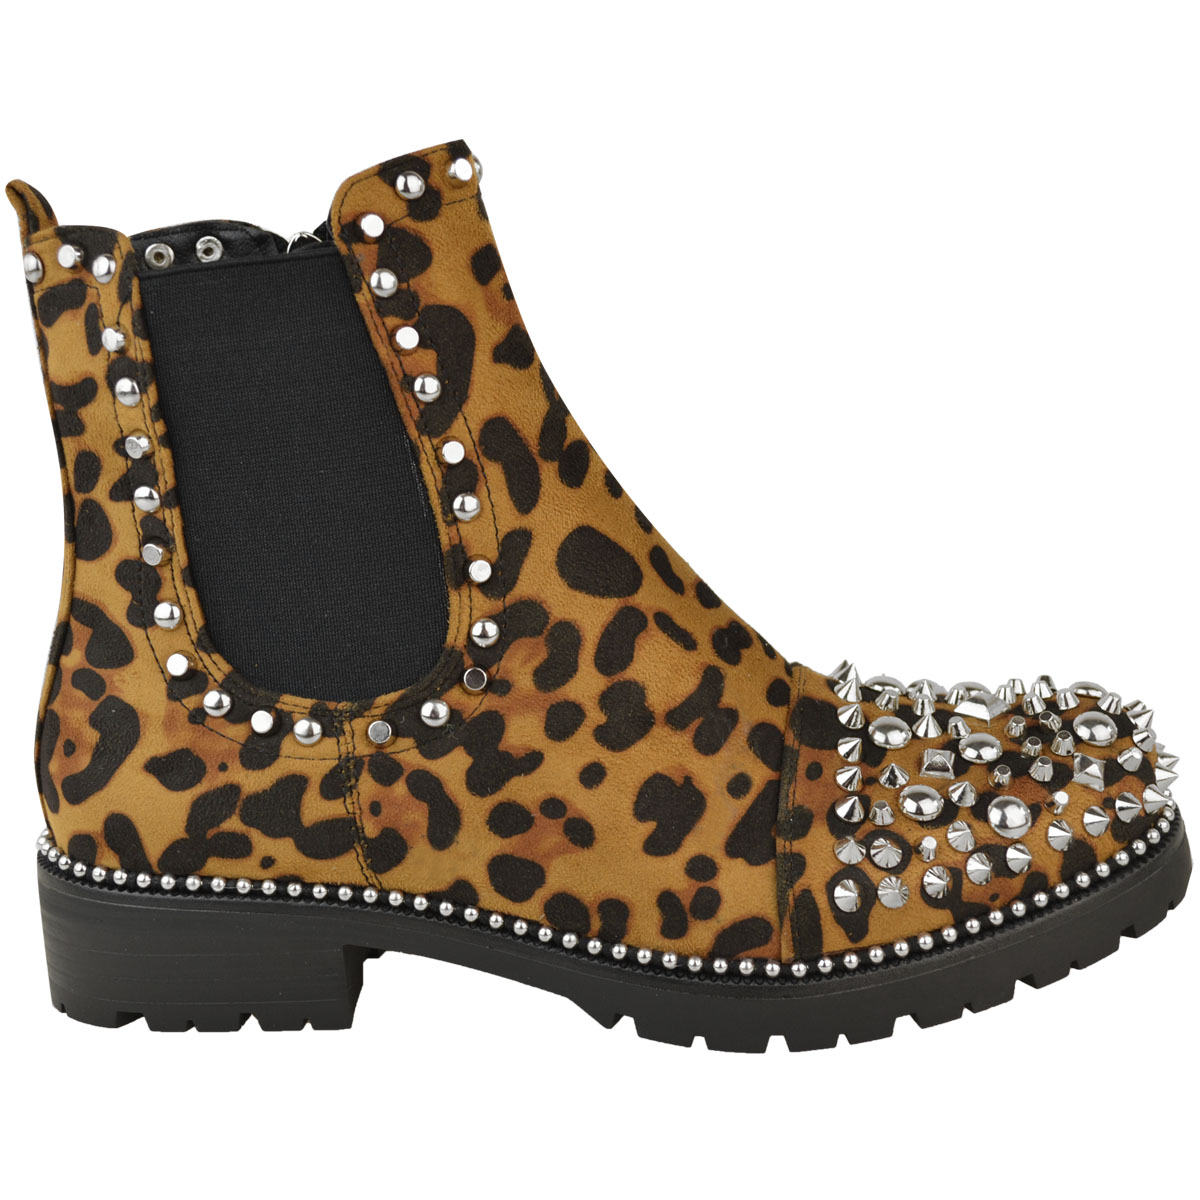 New-Womens-Ladies-Studded-Goth-Zip-Ankle-Boots-Gusset-Chelsea-Chunky-Punk-Size Indexbild 11